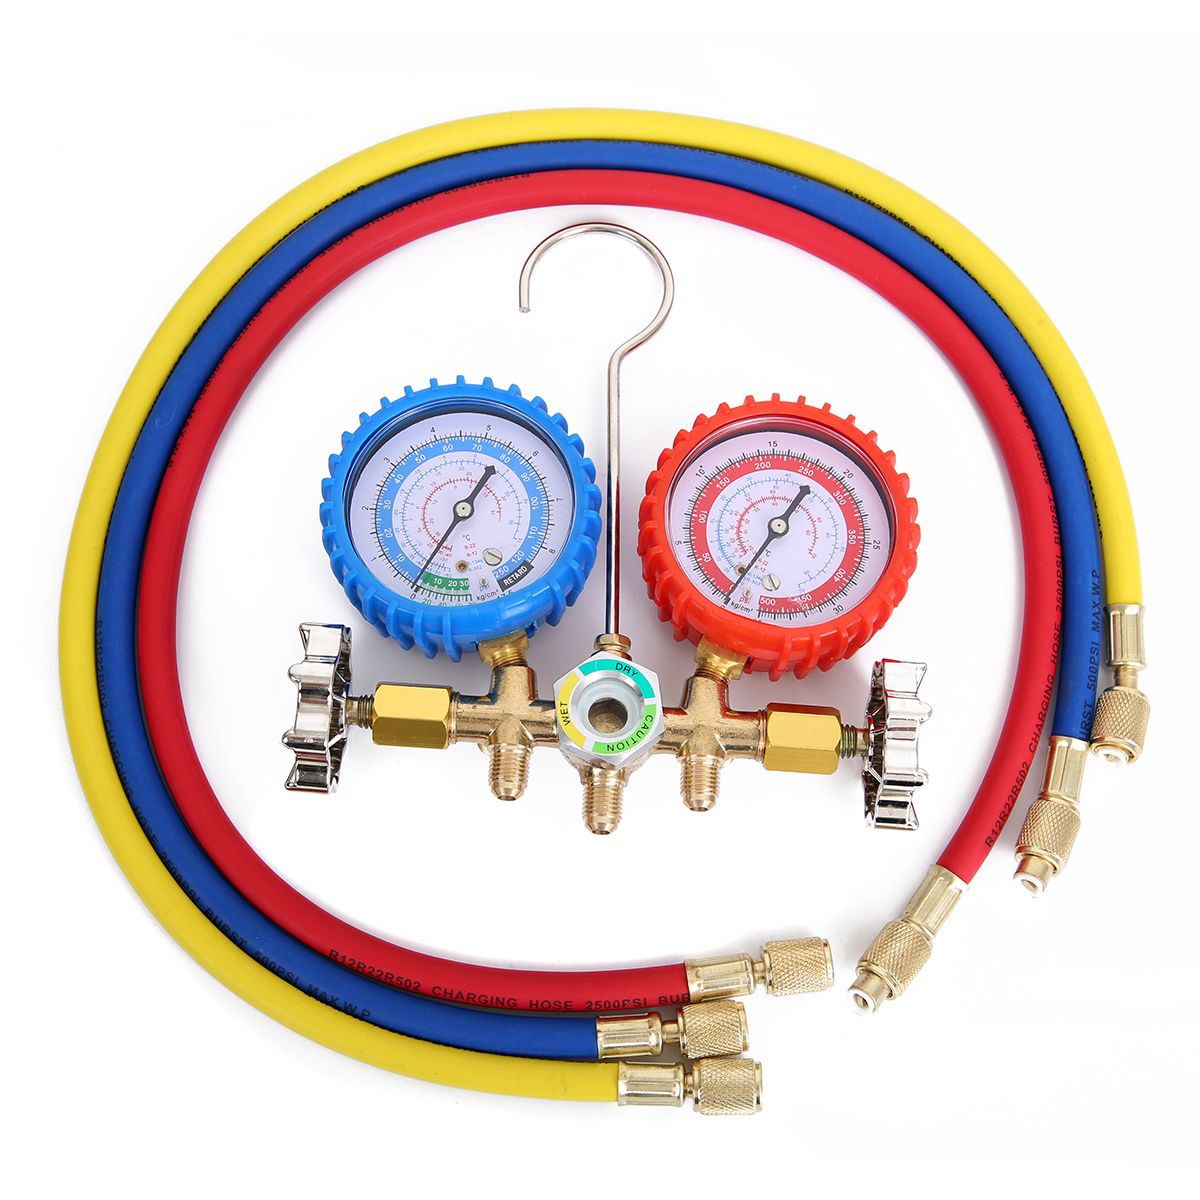 1Set Manifold Gauge Tool 0-10MPA Charging For R134A R12 R22 R404z Air Condition Refrigeration